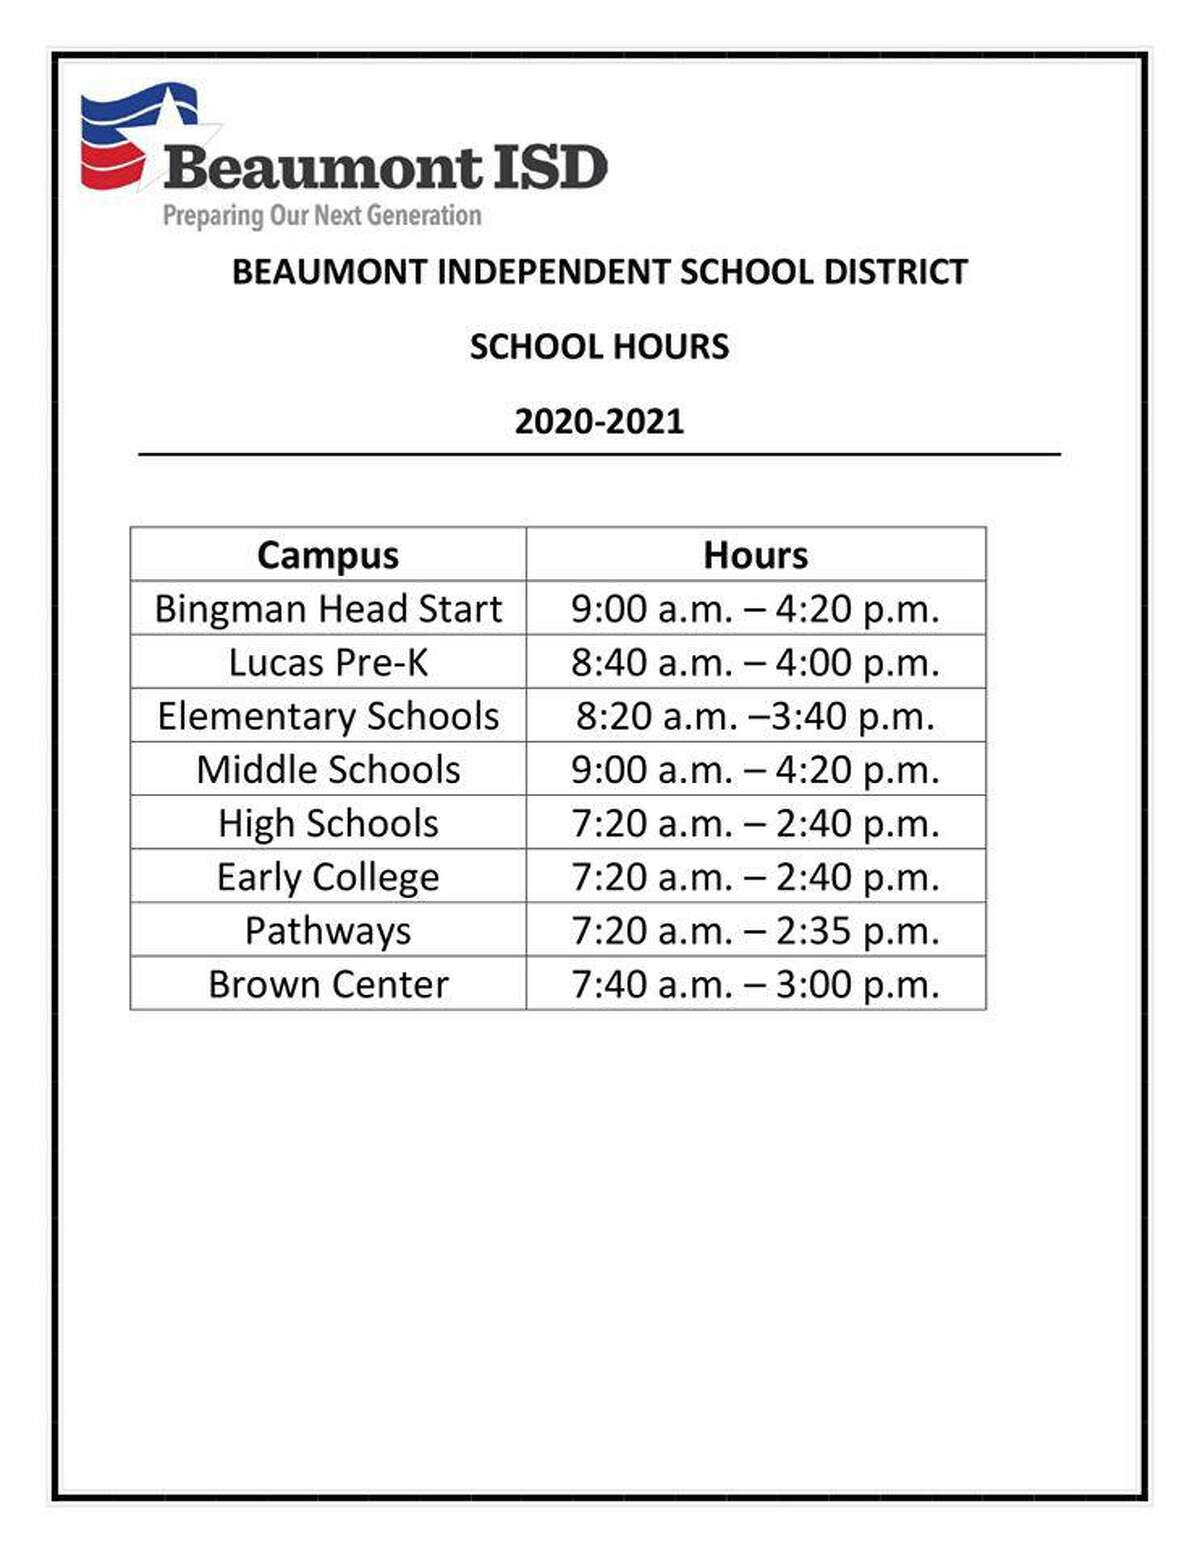 BISD adjusted their bell schedule for the 2020-21 school year